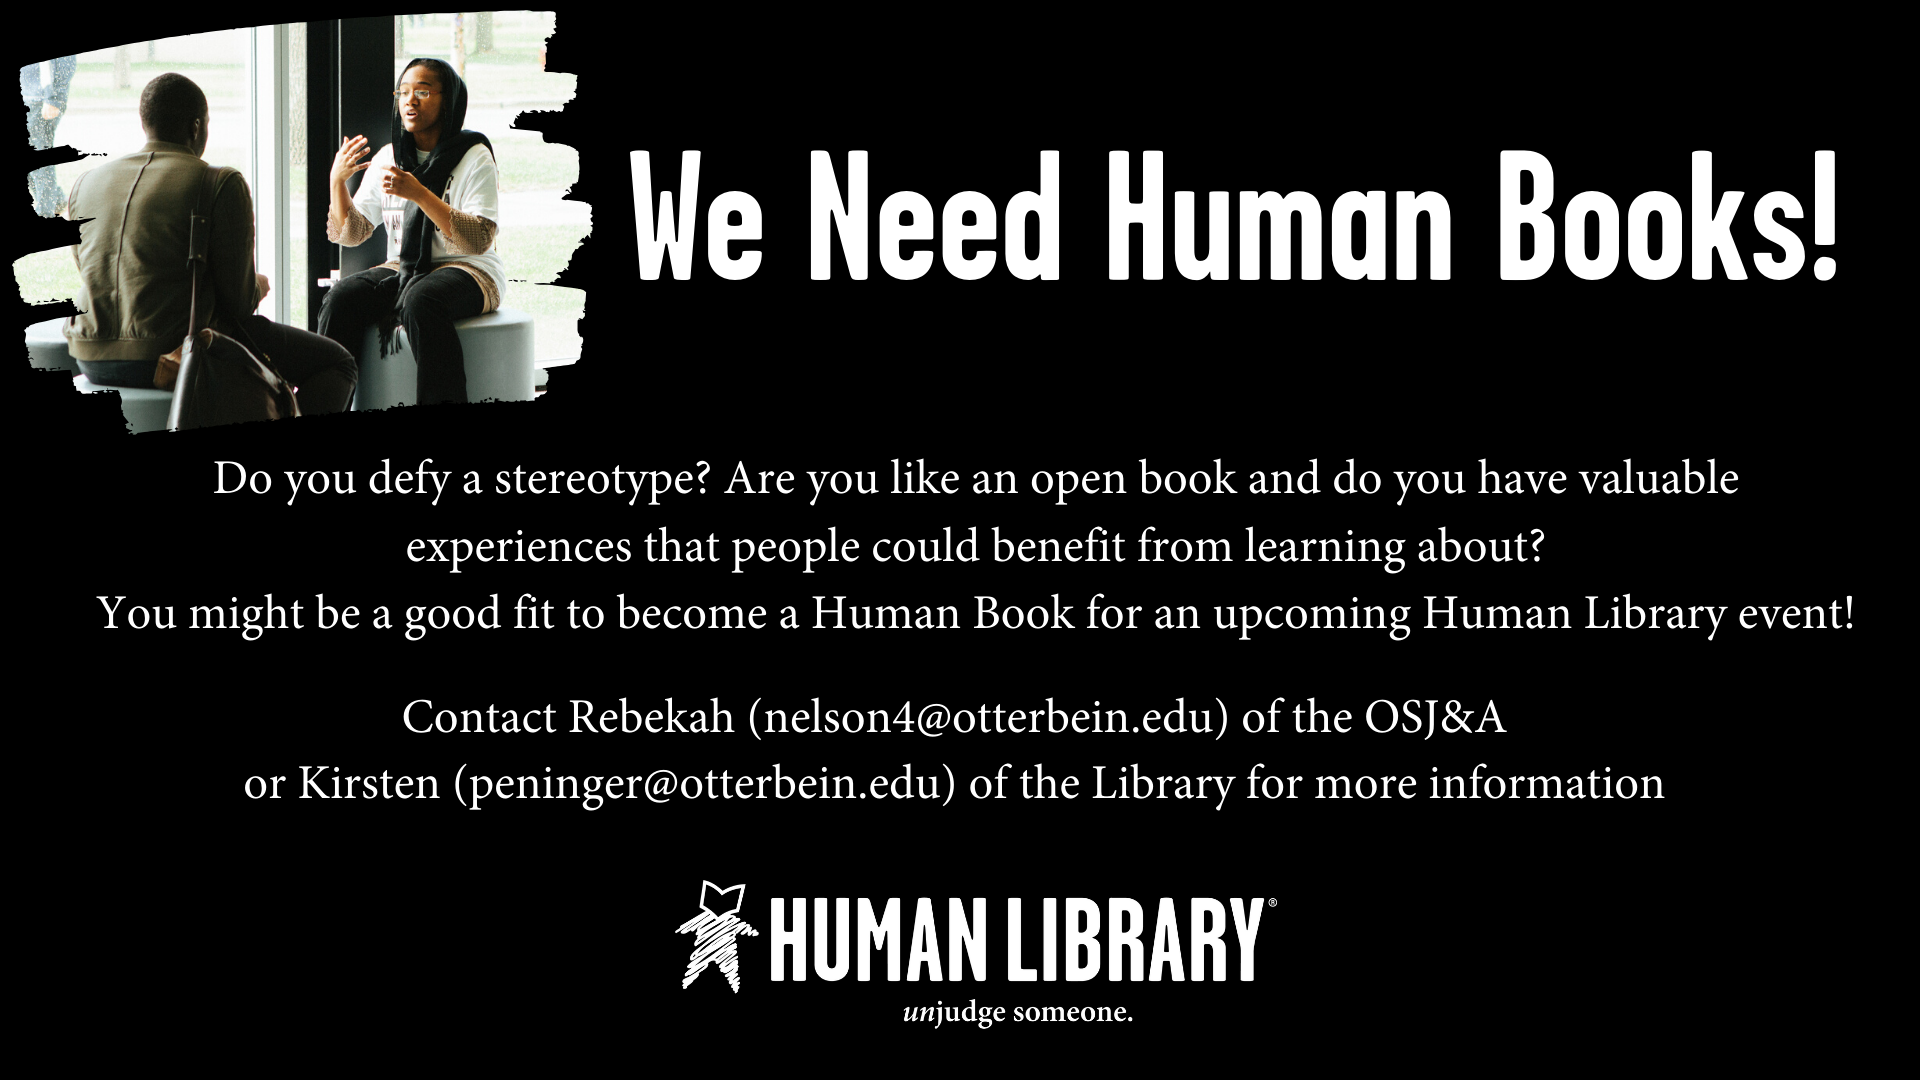 black image with photo of people advertising for Human library